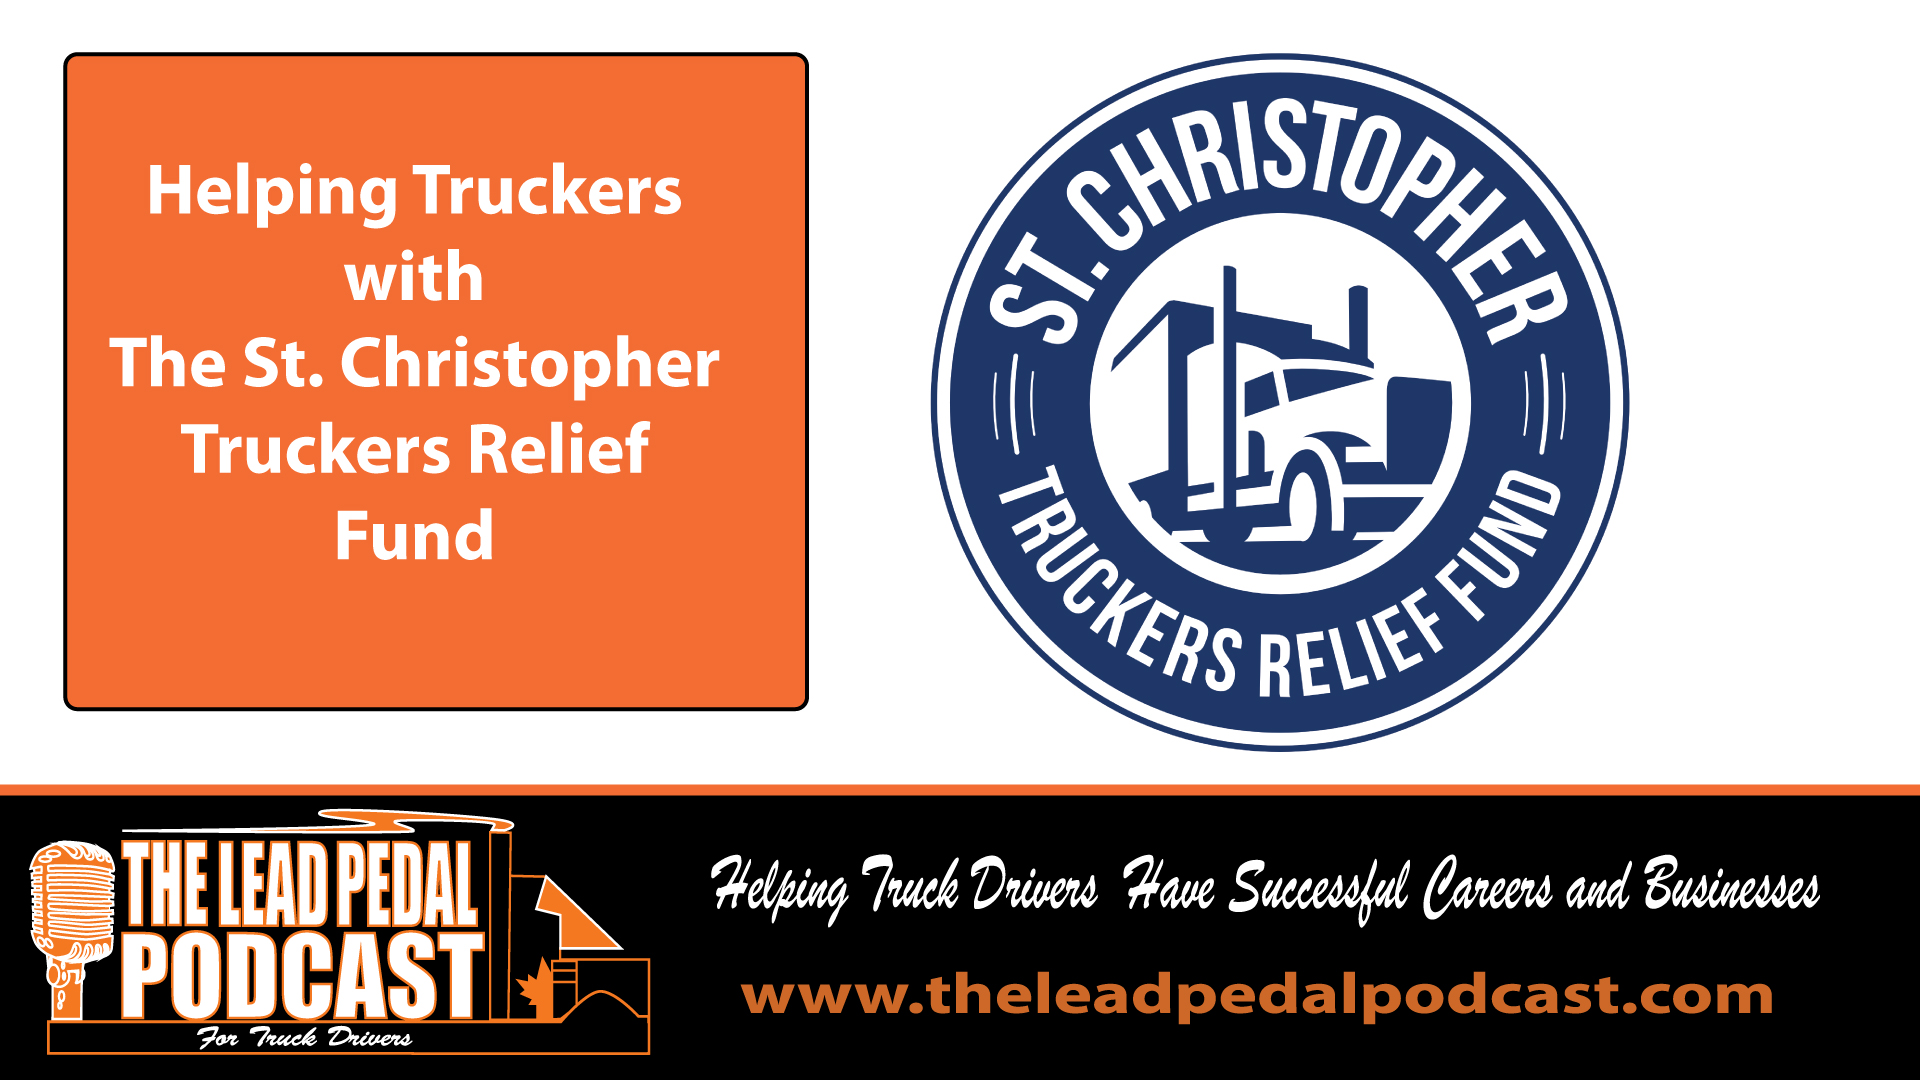 LP626 Helping Truckers with St. Christophers Trucker Relief Fund